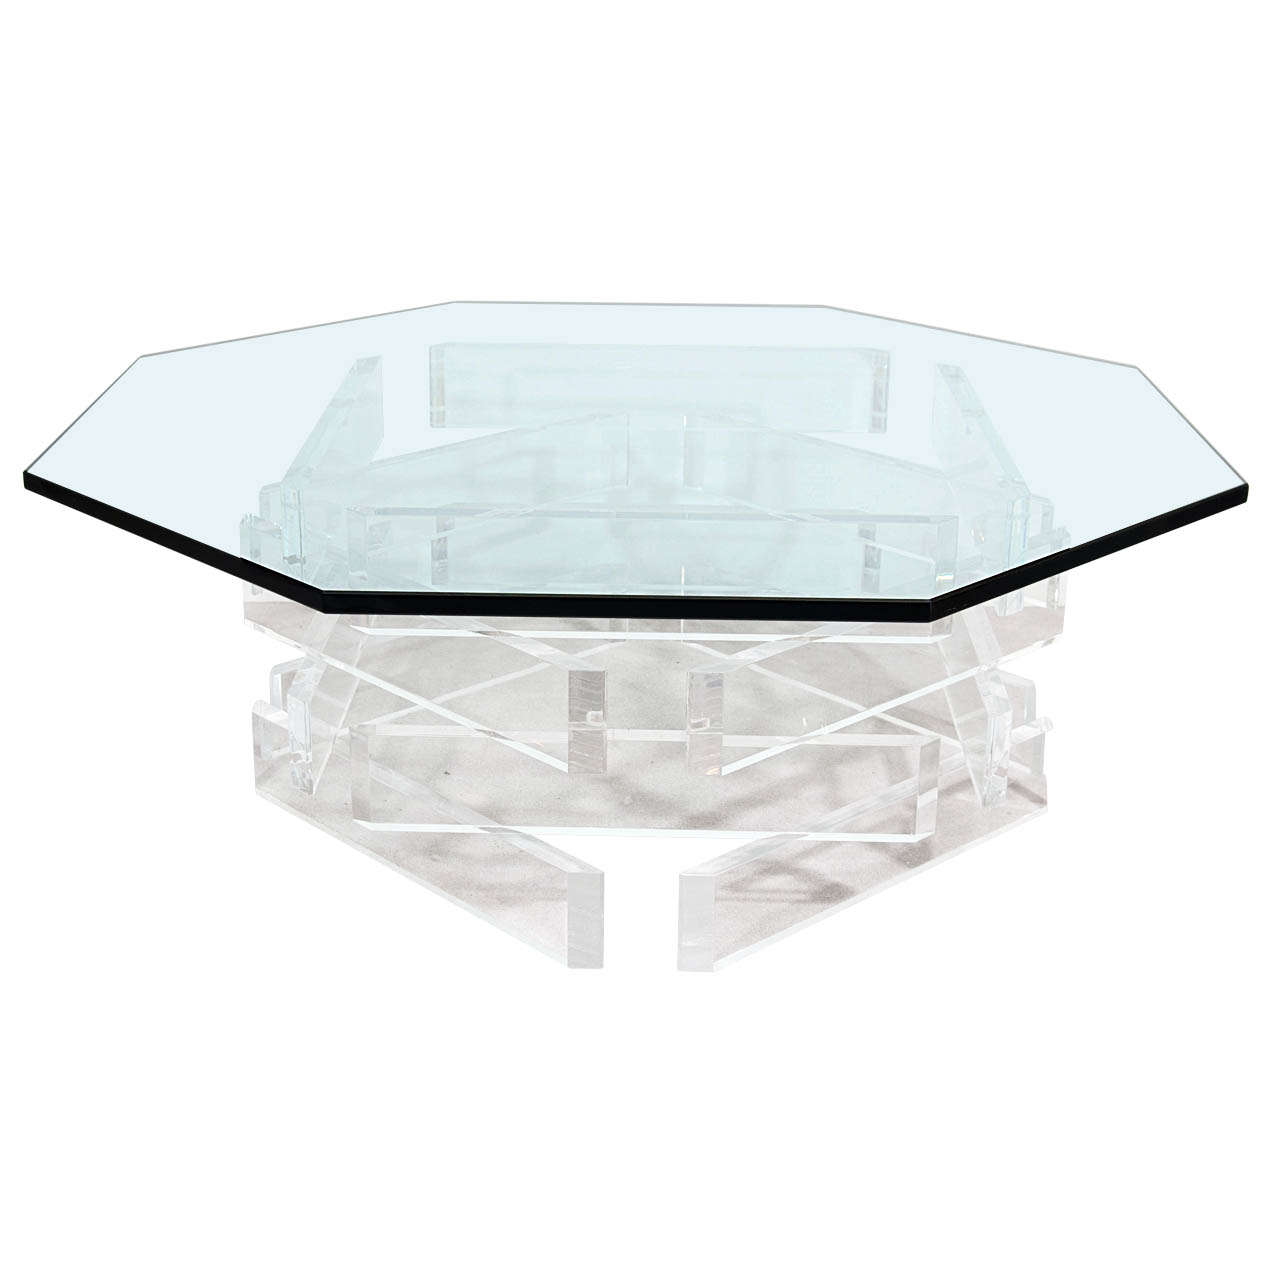 Genial A Mid Century Glass And Lucite Coffee Or Cocktail Table For Sale